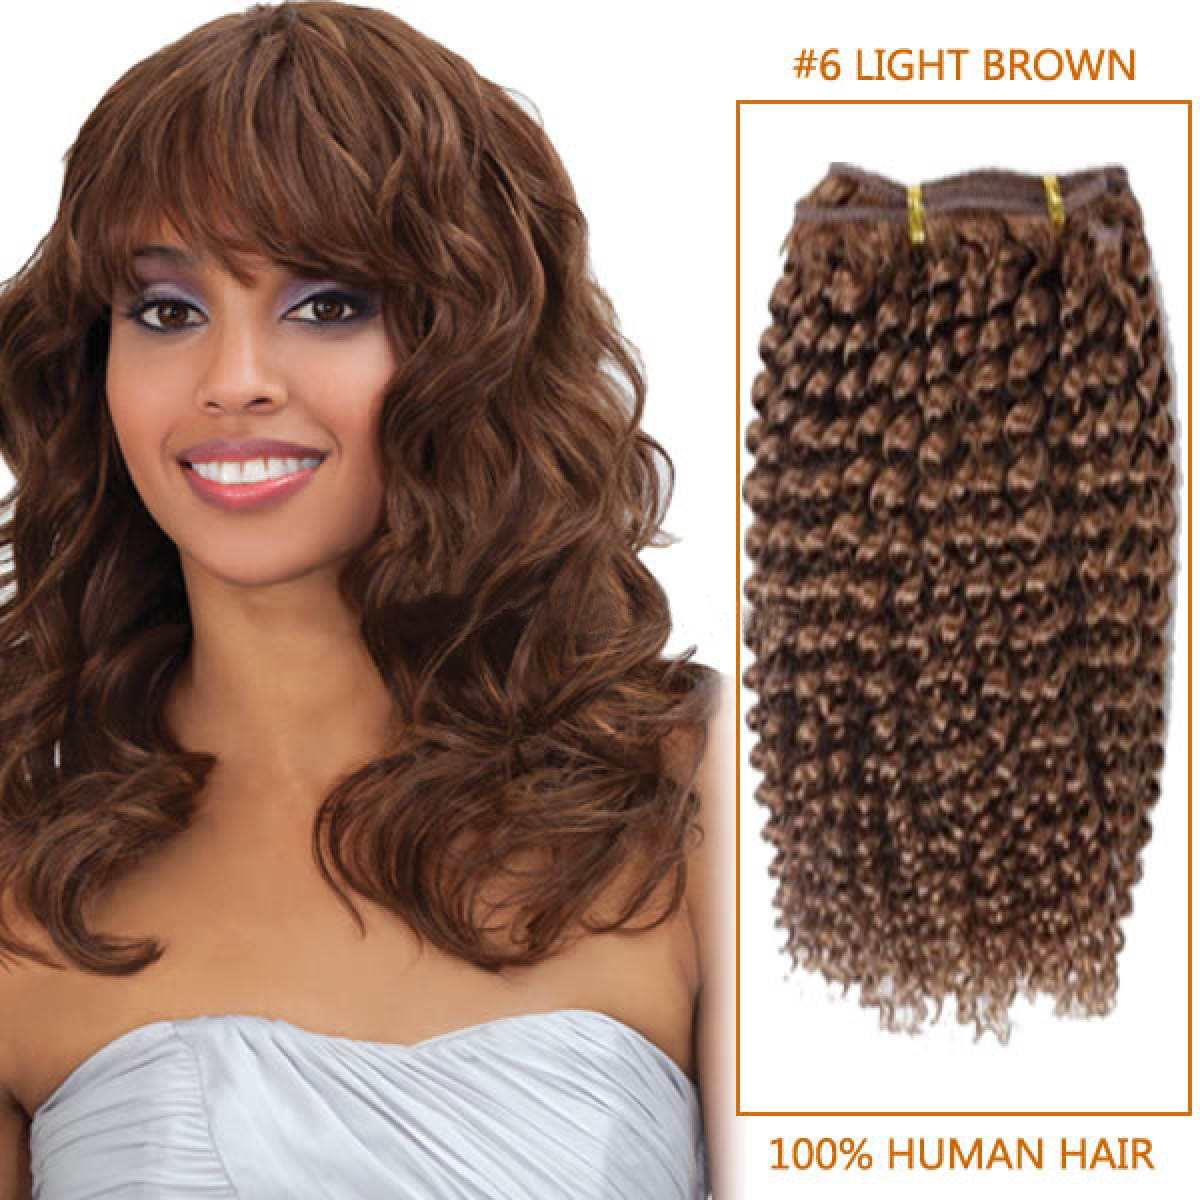 16 Inch  6 Light Brown Afro Curl Indian Remy Hair Wefts b5f336f19aca